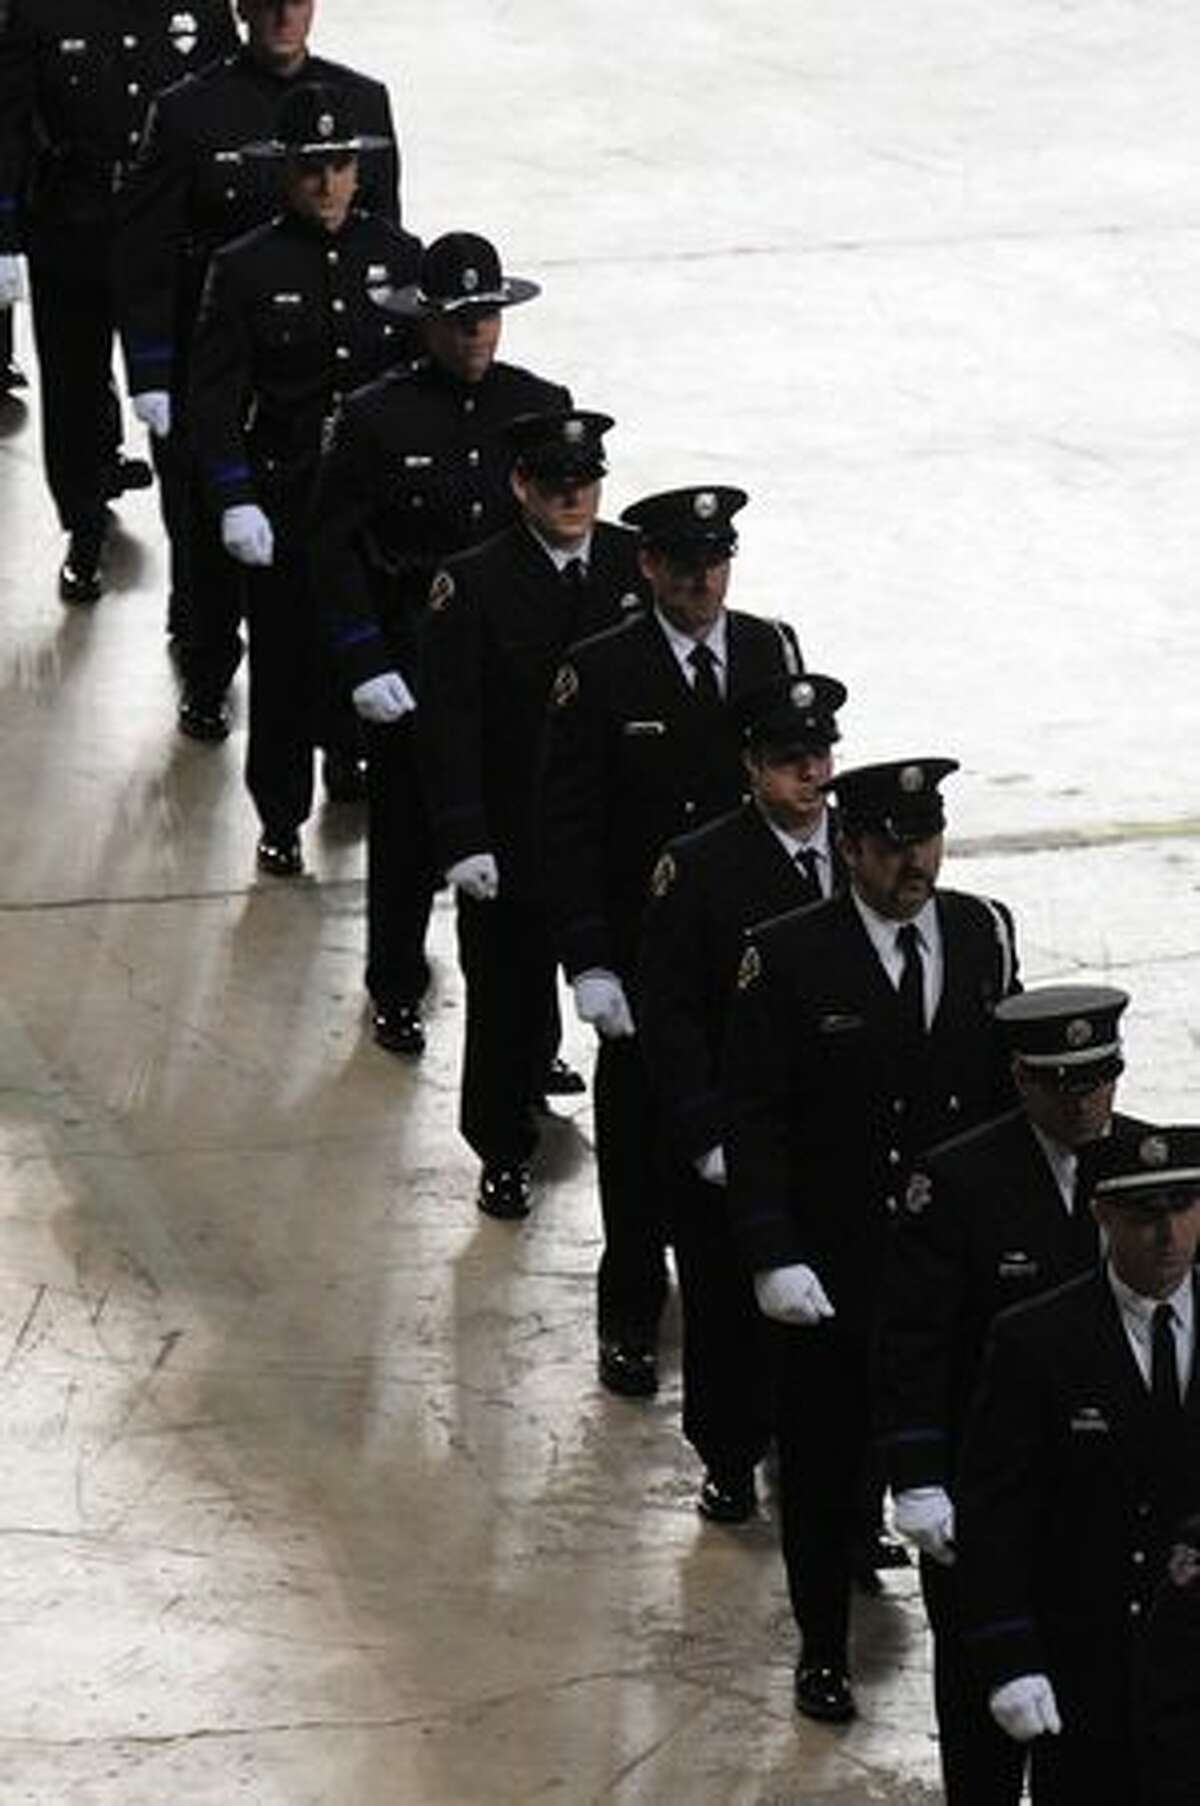 Officers march into the Tacoma Dome during the memorial service for four slain Lakewood police officers.